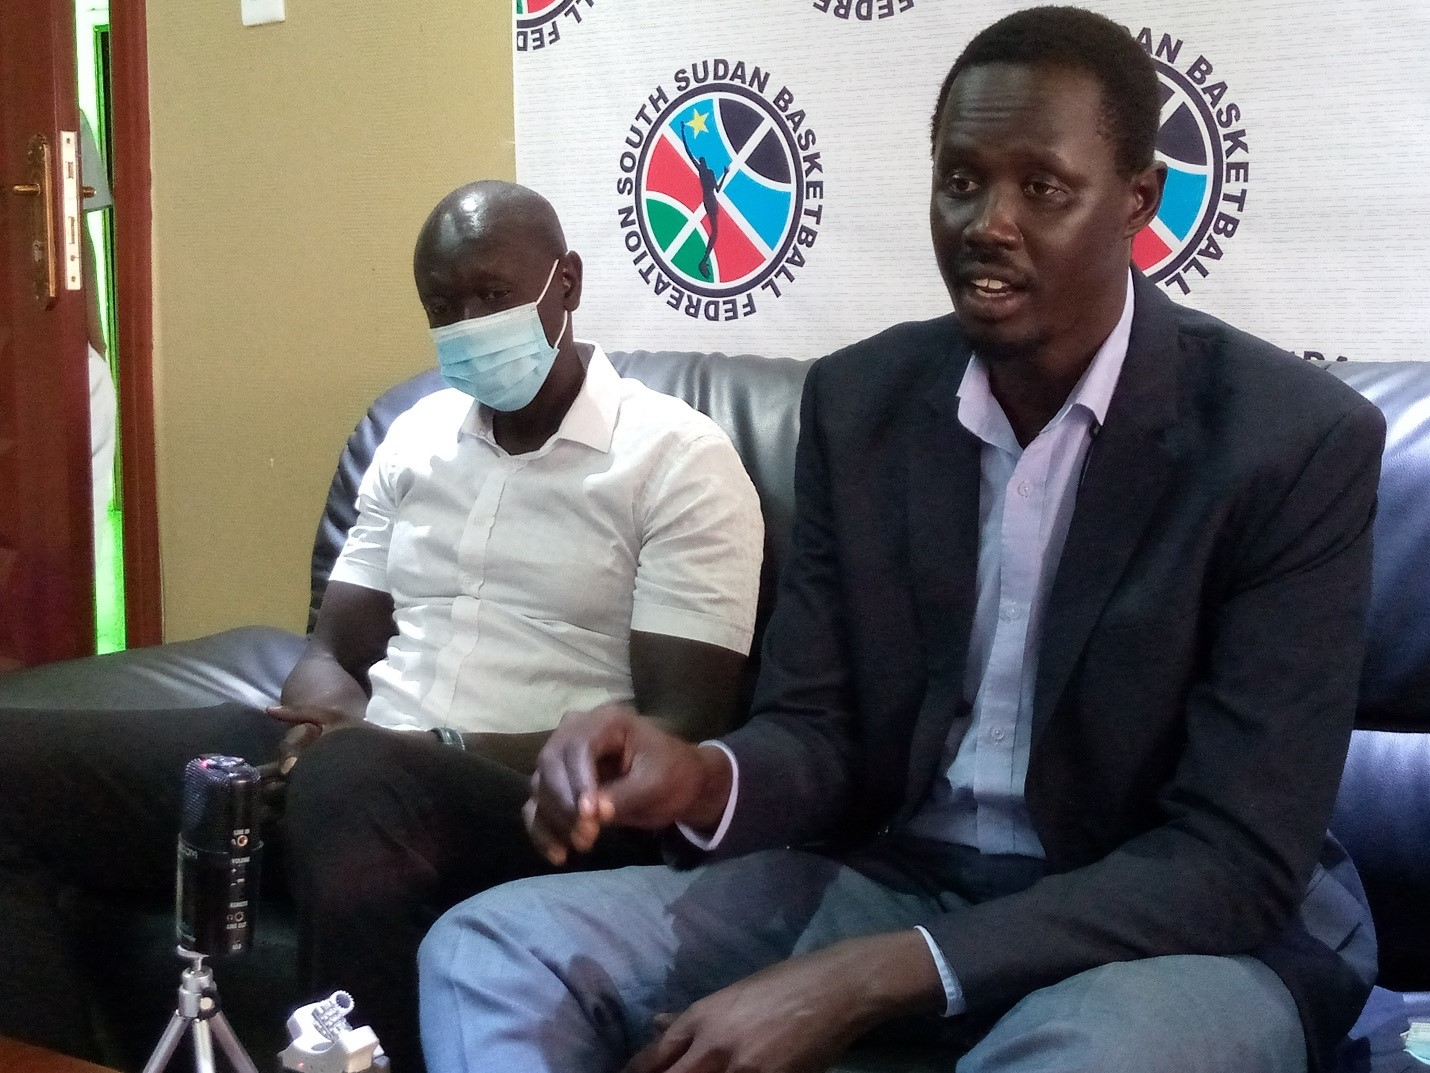 SSBF leaders deny claims of suspension